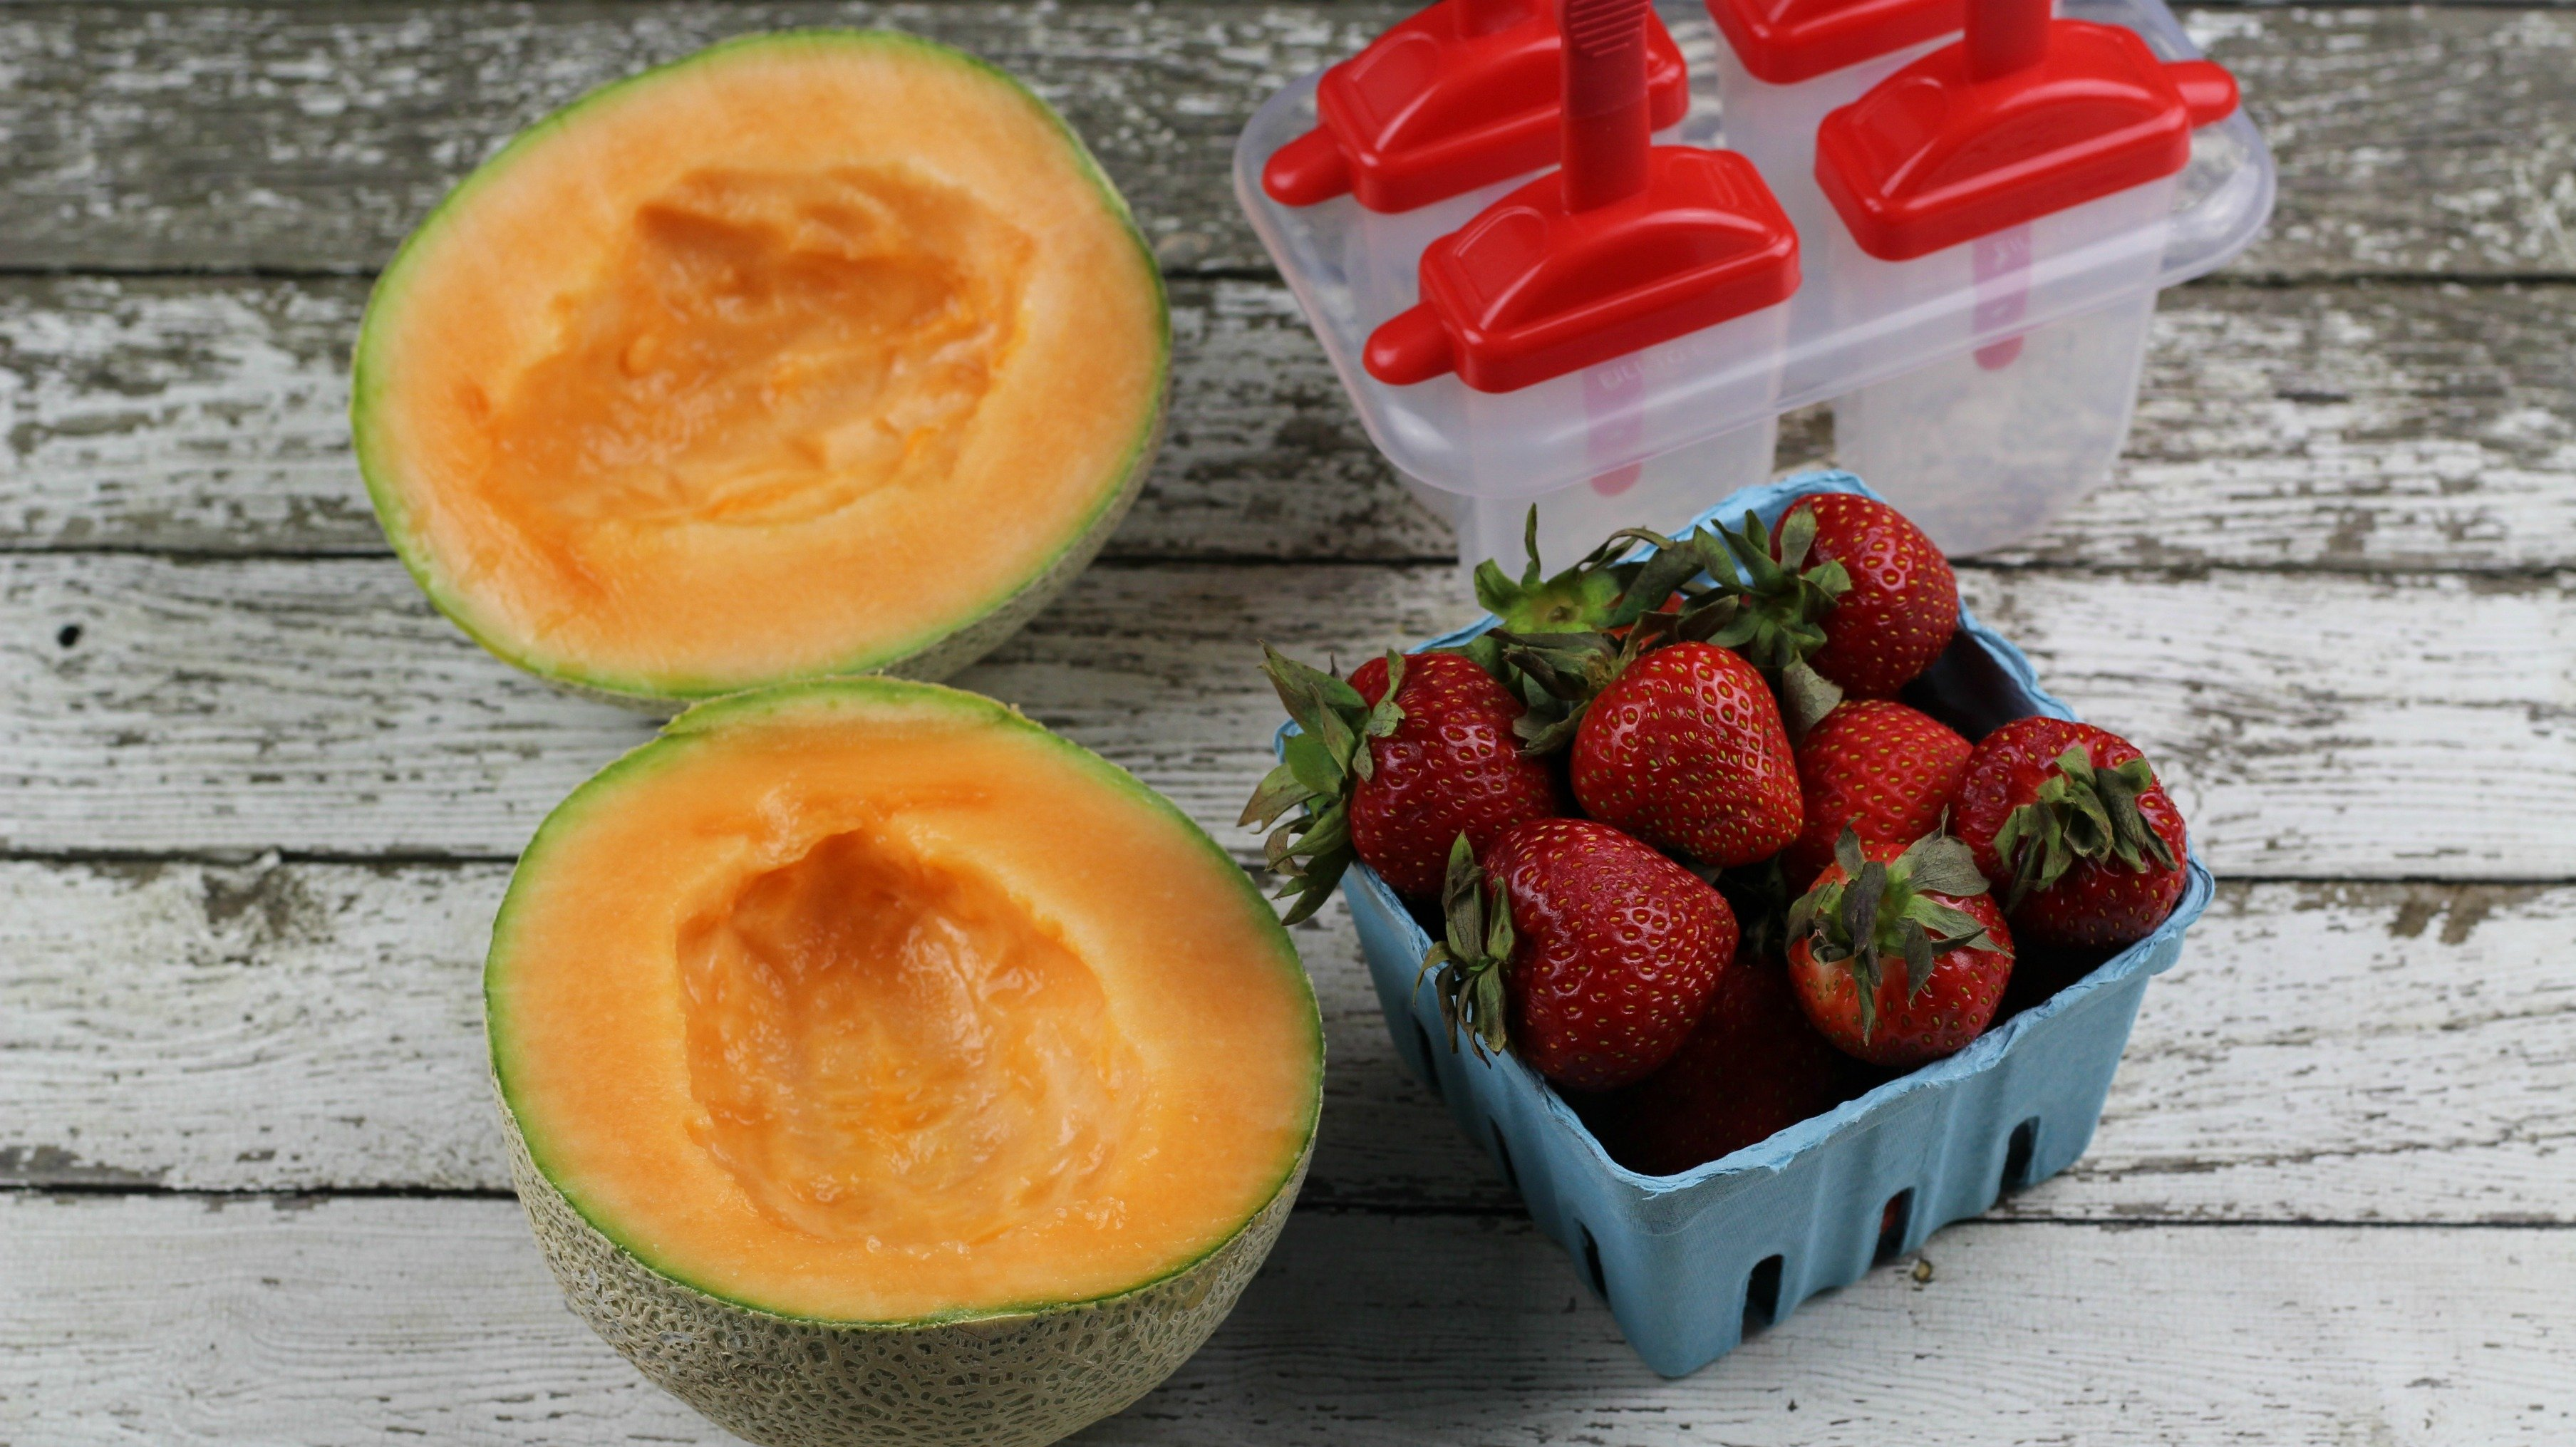 Strawberry Cantaloupe Popsicles Ingredients